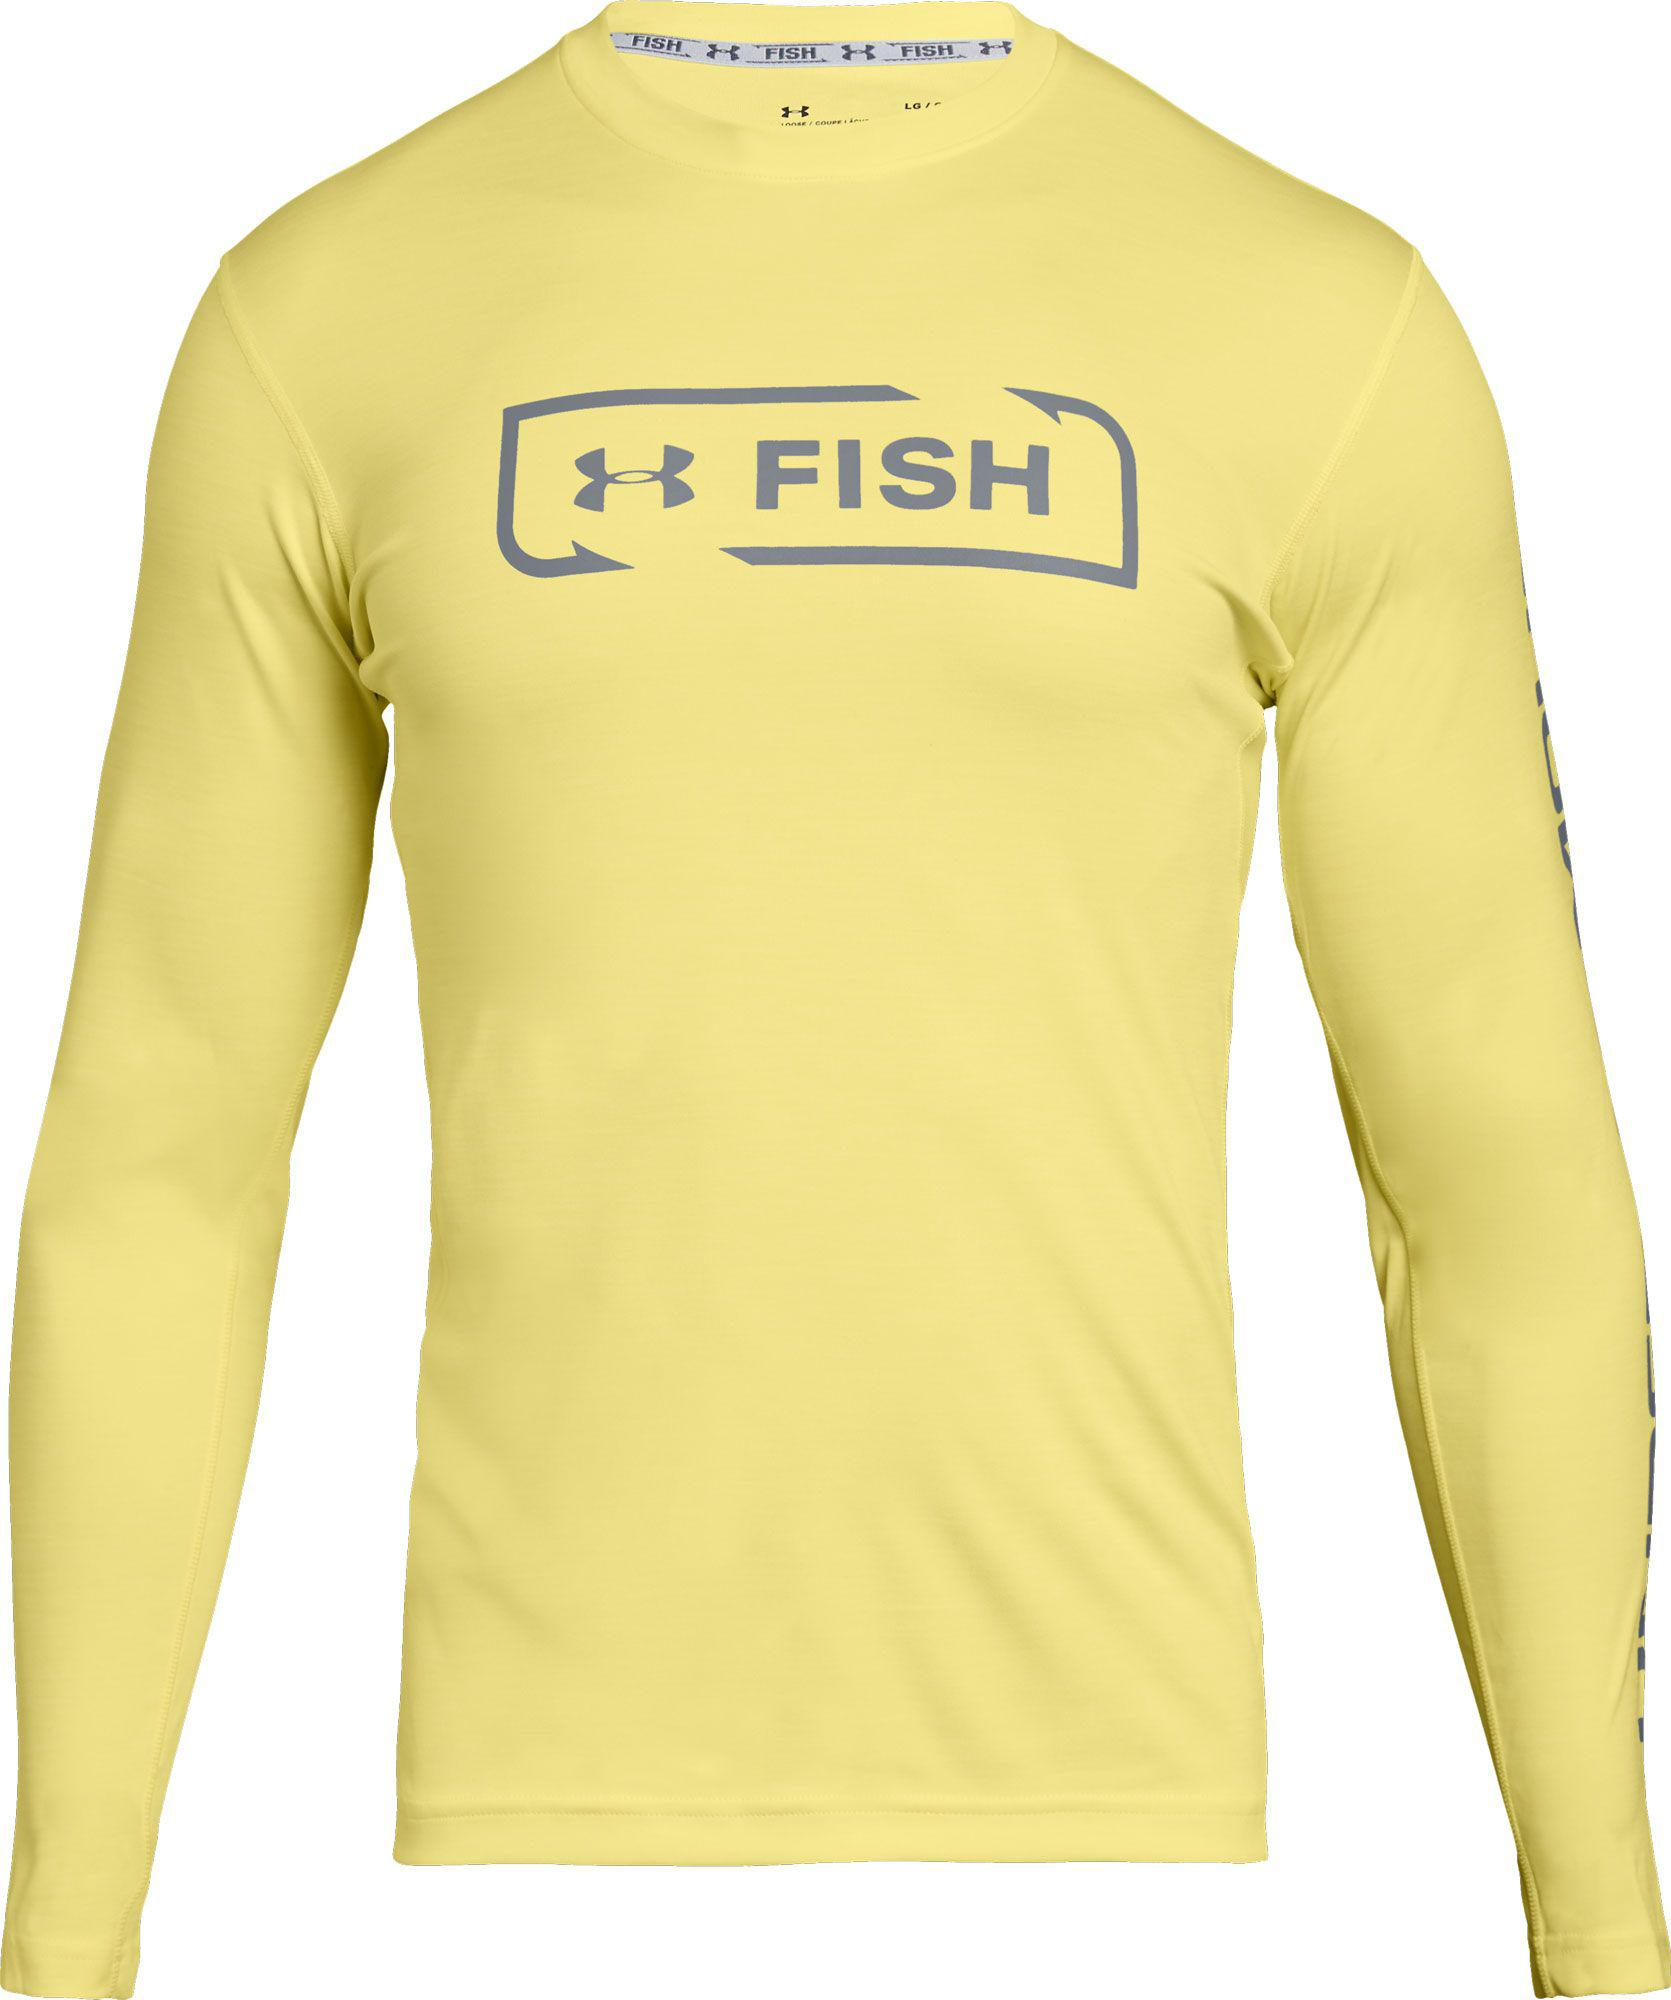 c7d304f4f Under Armour Fish Hunter Icon Long Sleeve Shirt in Yellow for Men - Lyst